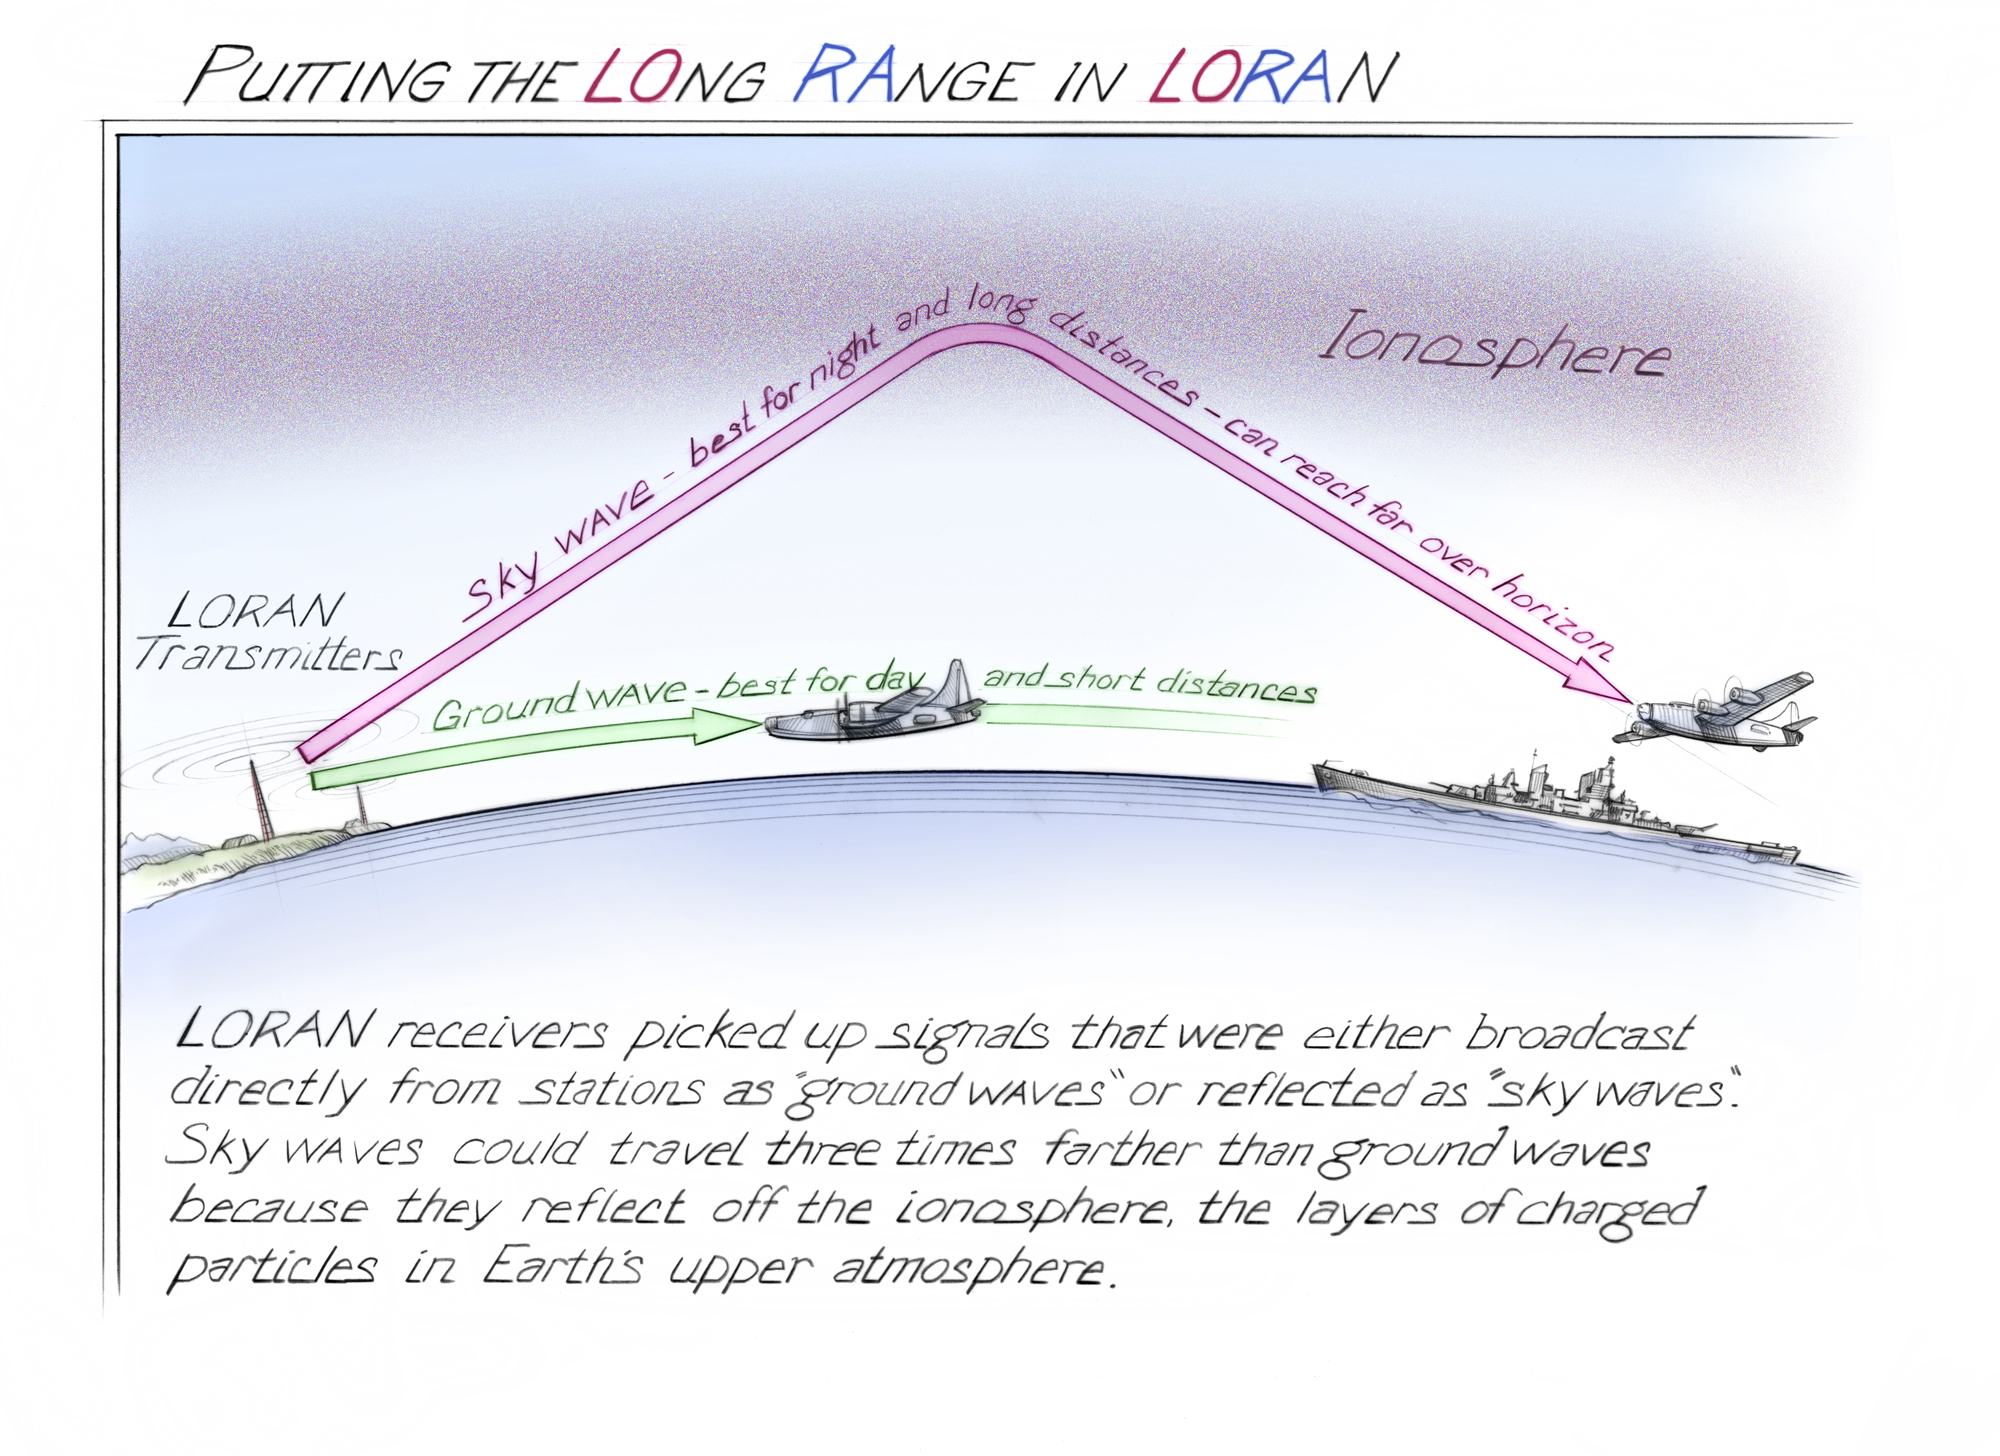 Putting The Long Range In Loran Time And Navigation